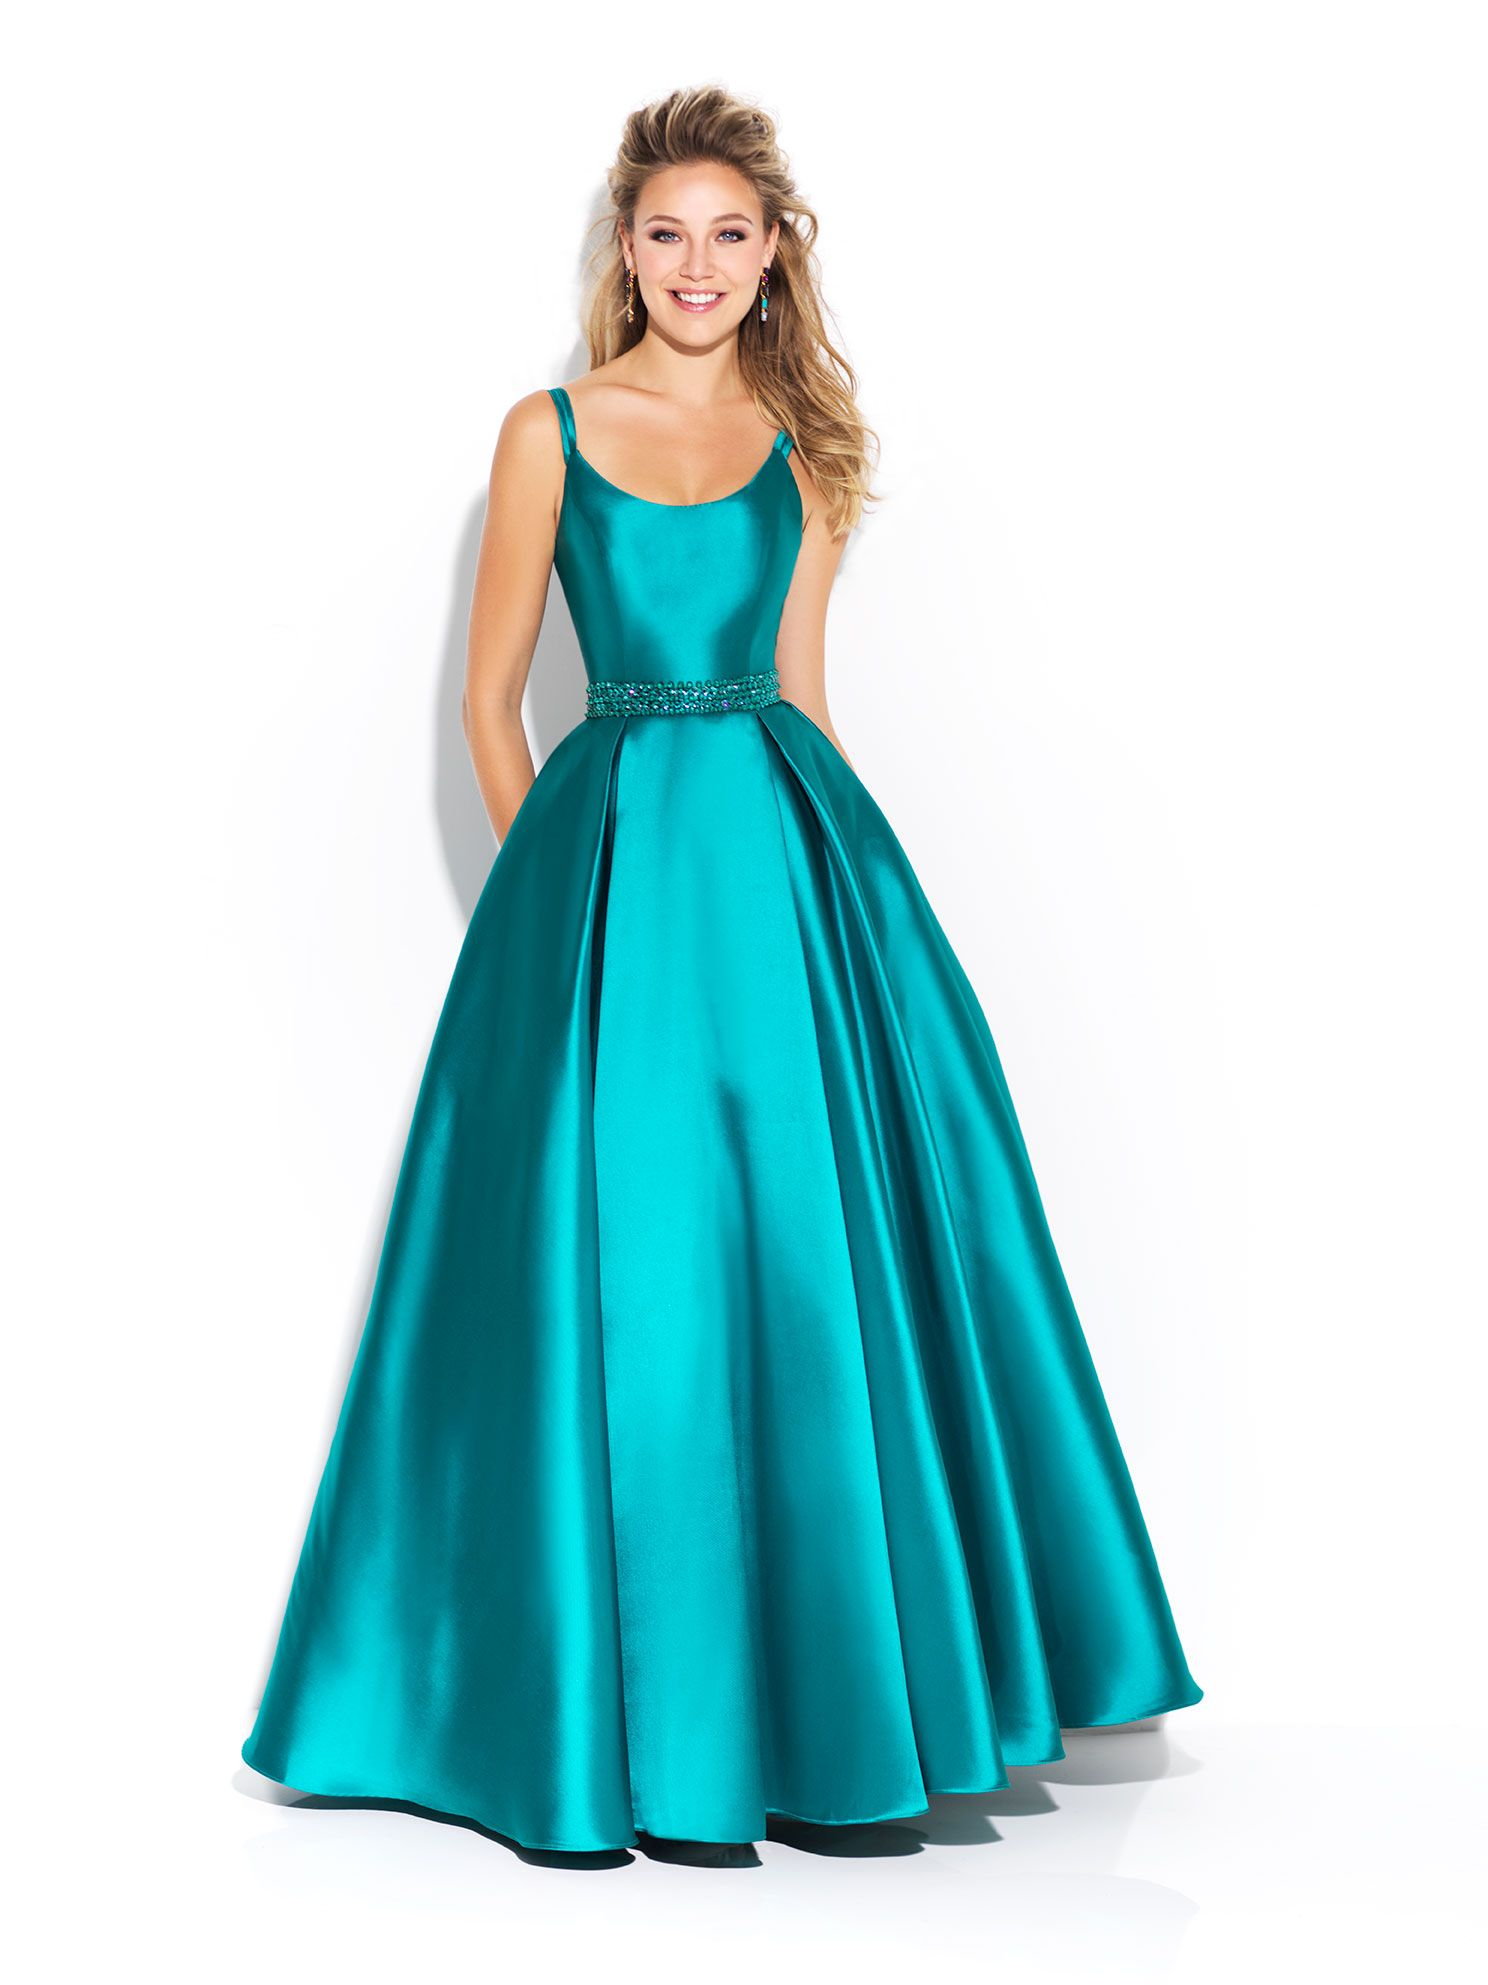 Madison James 17-240 | Prom dress stores, Prom and Disney prom